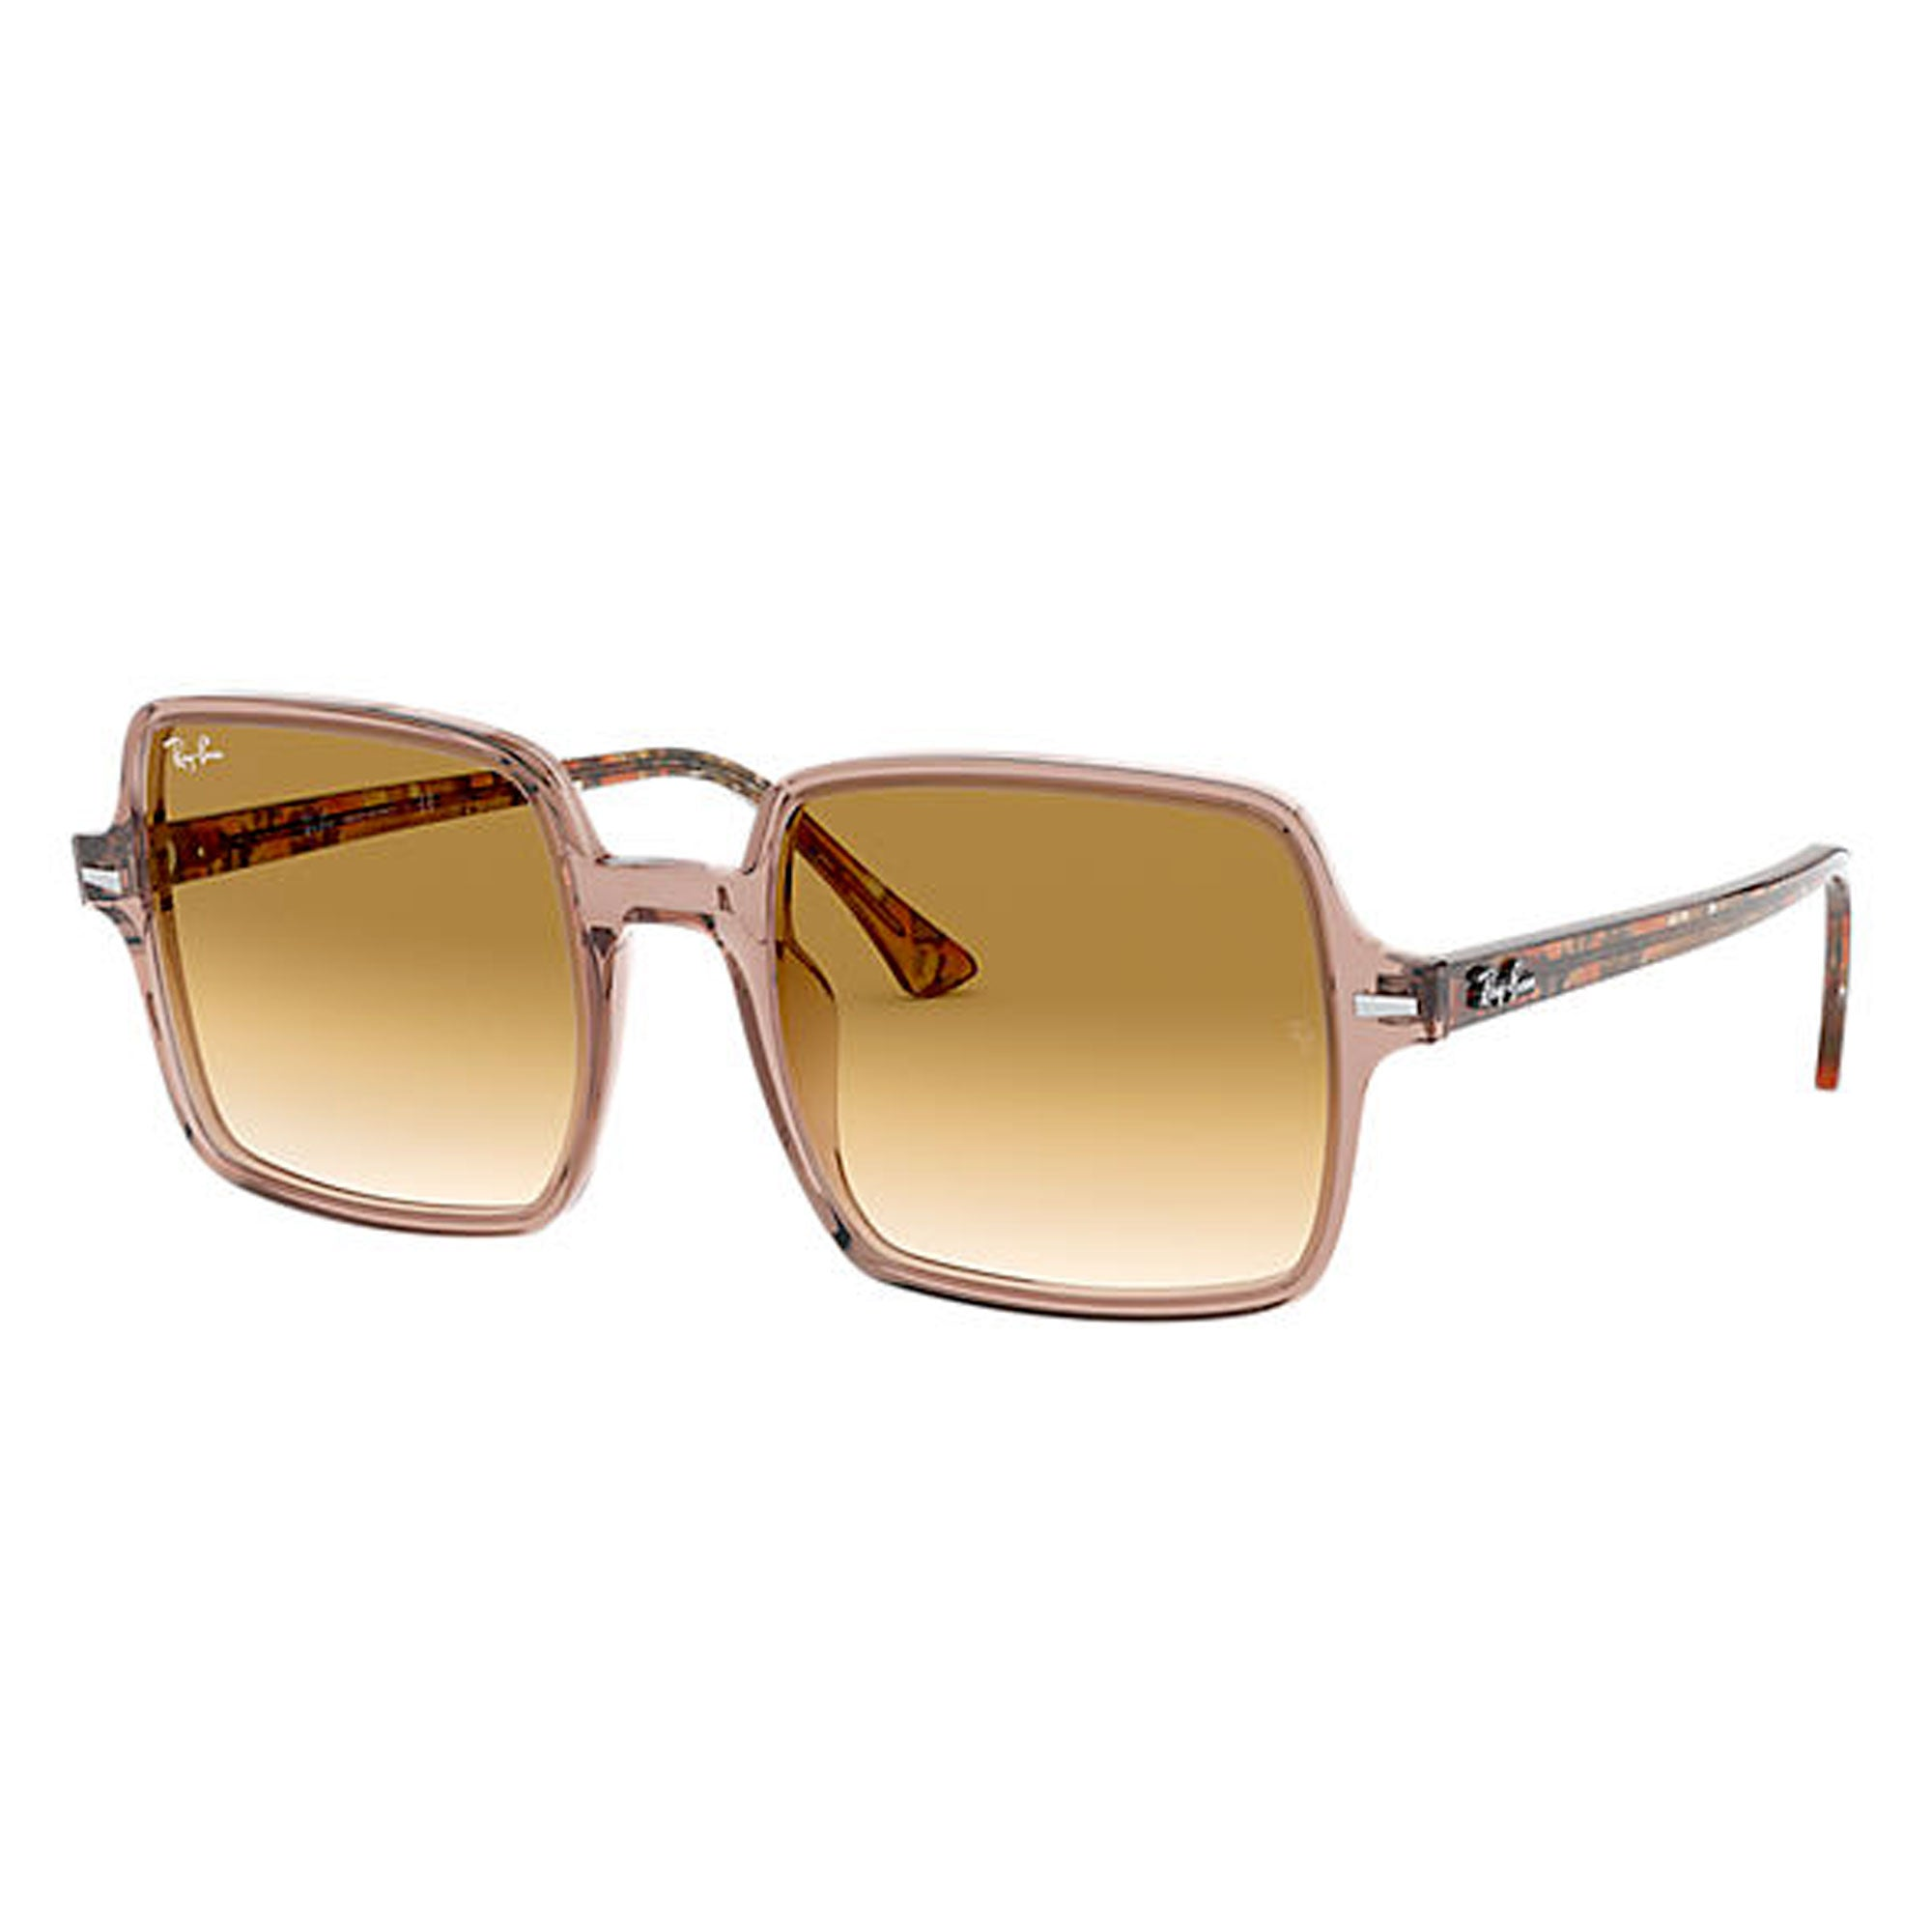 Ray-Ban Square II Women's Sunglasses - Transparent Light Brown/Brown Gradient